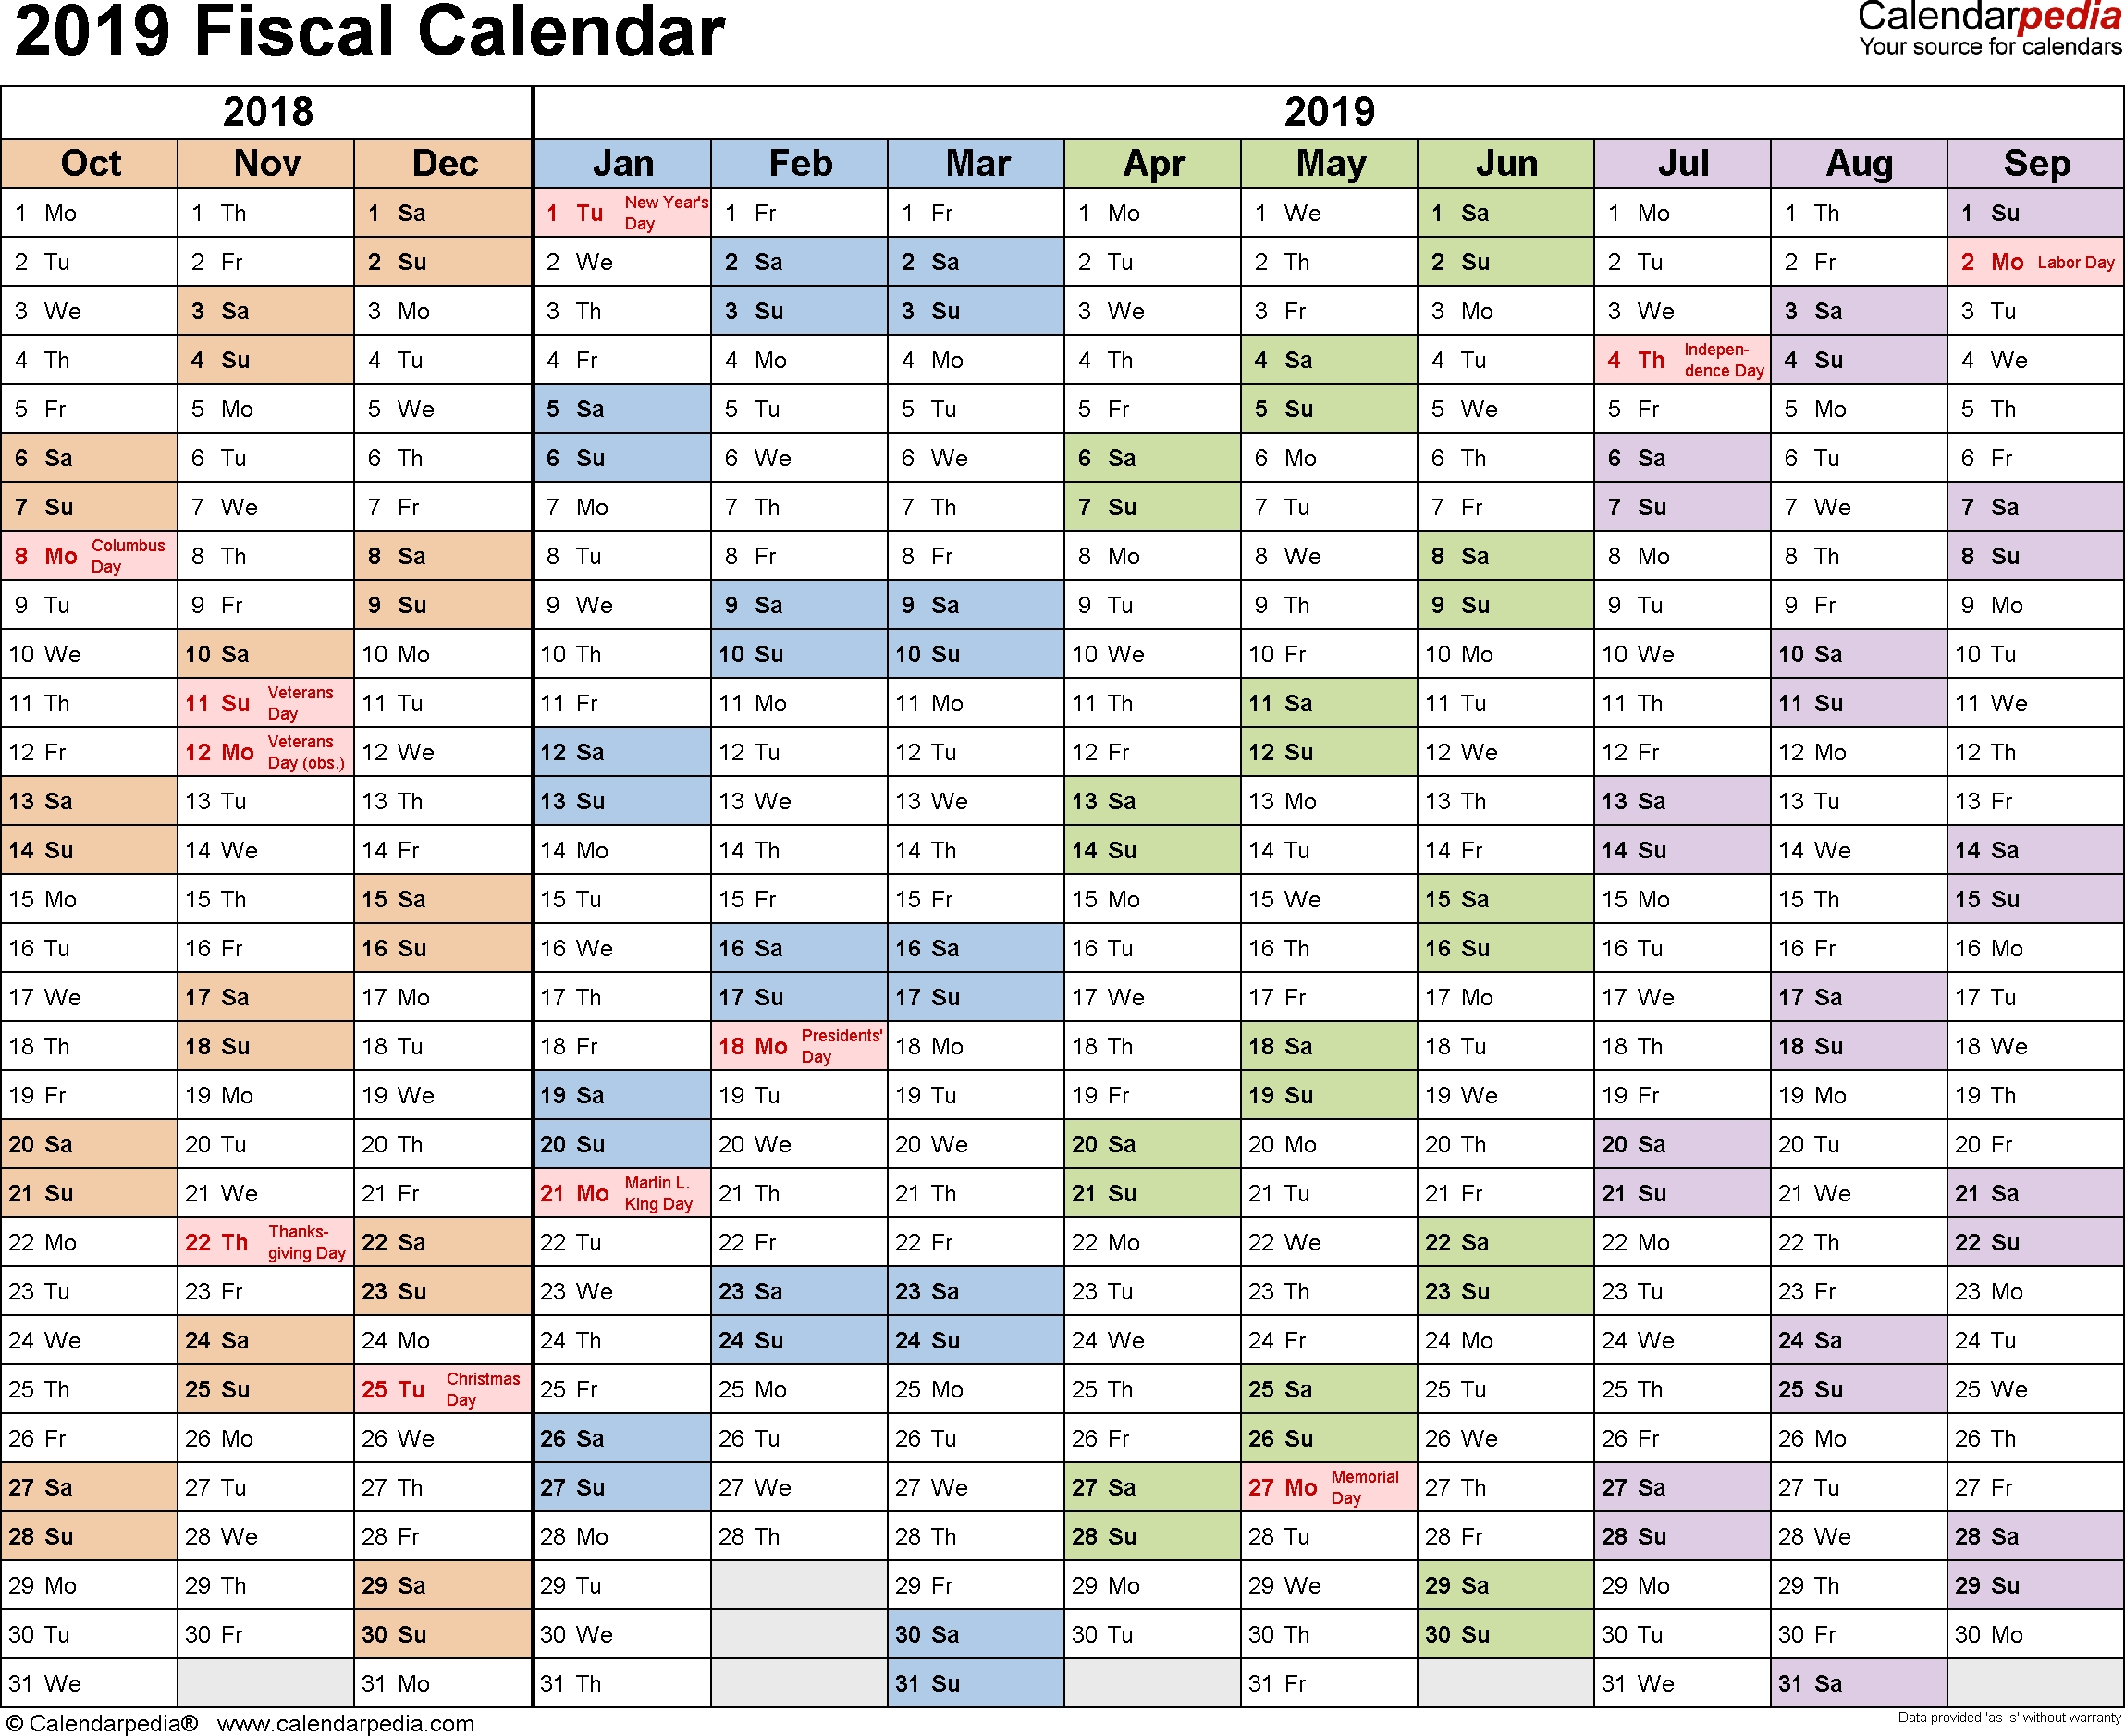 Fiscal Calendars 2019 - Free Printable Word Templates in Week Numbers For Financial Year 2019